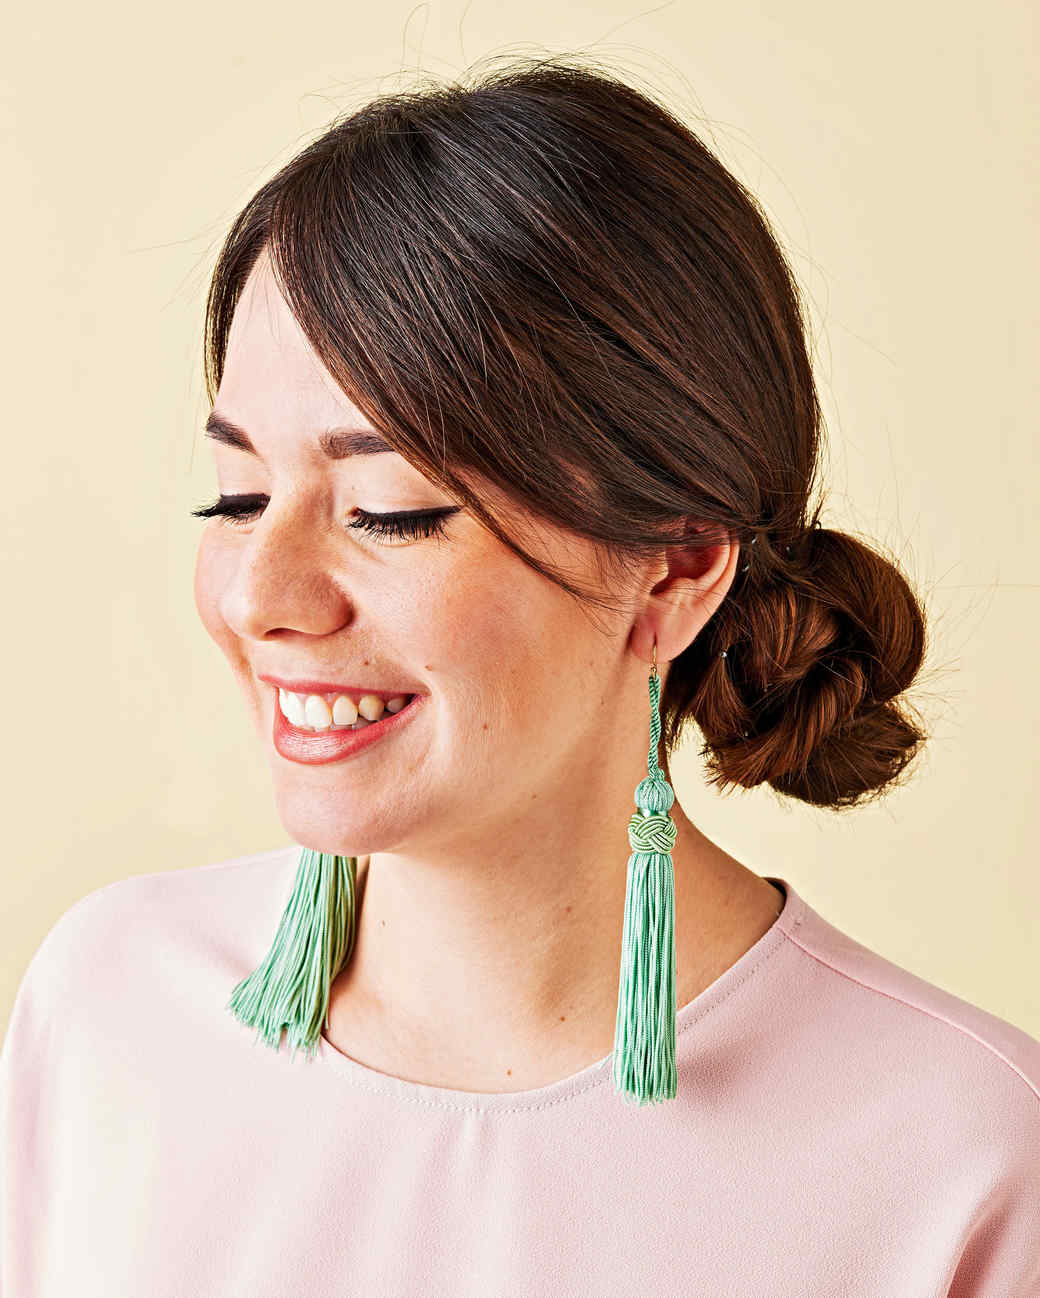 green fringe earrings on woman